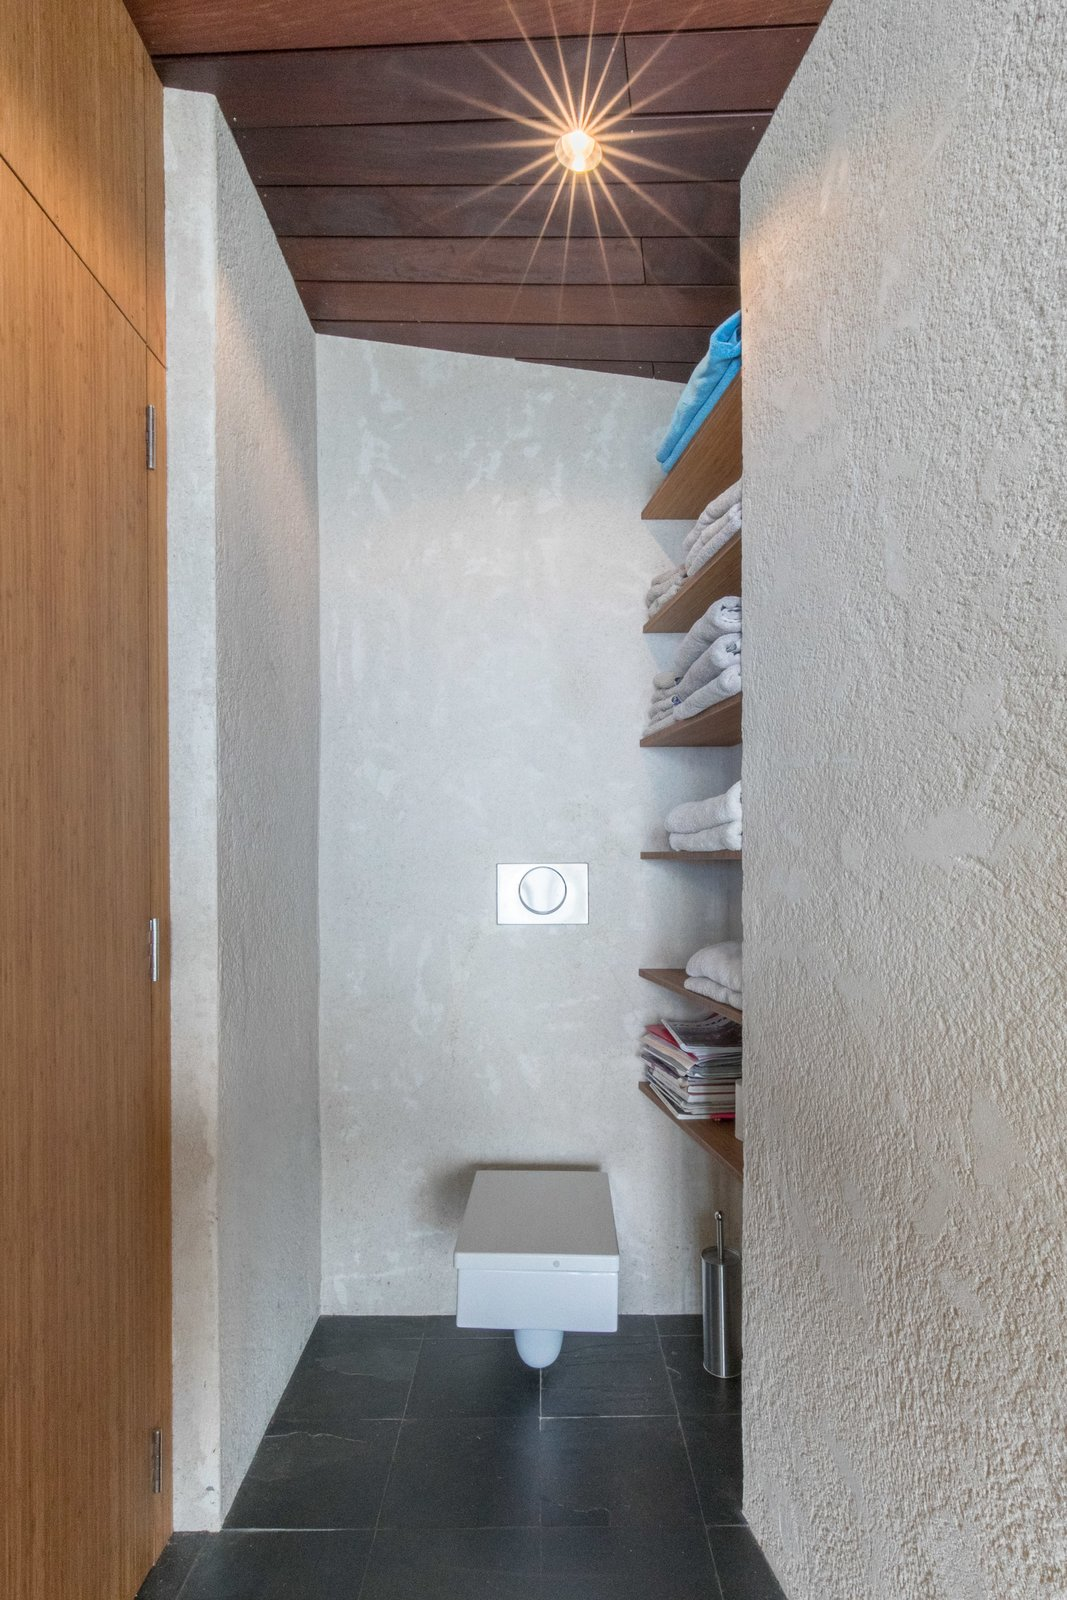 Tagged: Bath Room, One Piece Toilet, and Accent Lighting.  The Clifftop House by Modern on Maui - Liam Ball